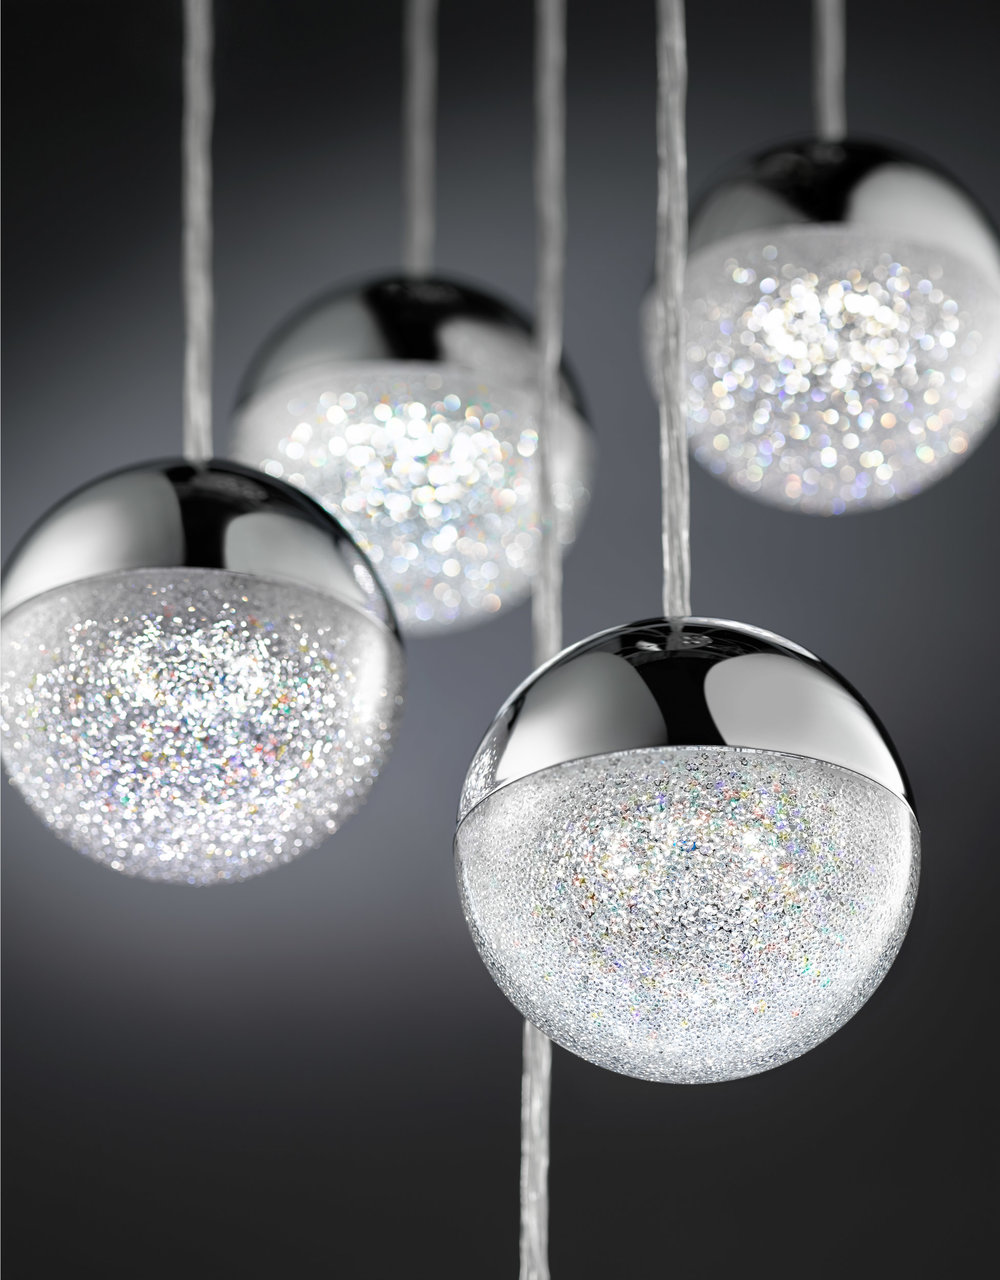 commercial product photography image of hanging sphere lights